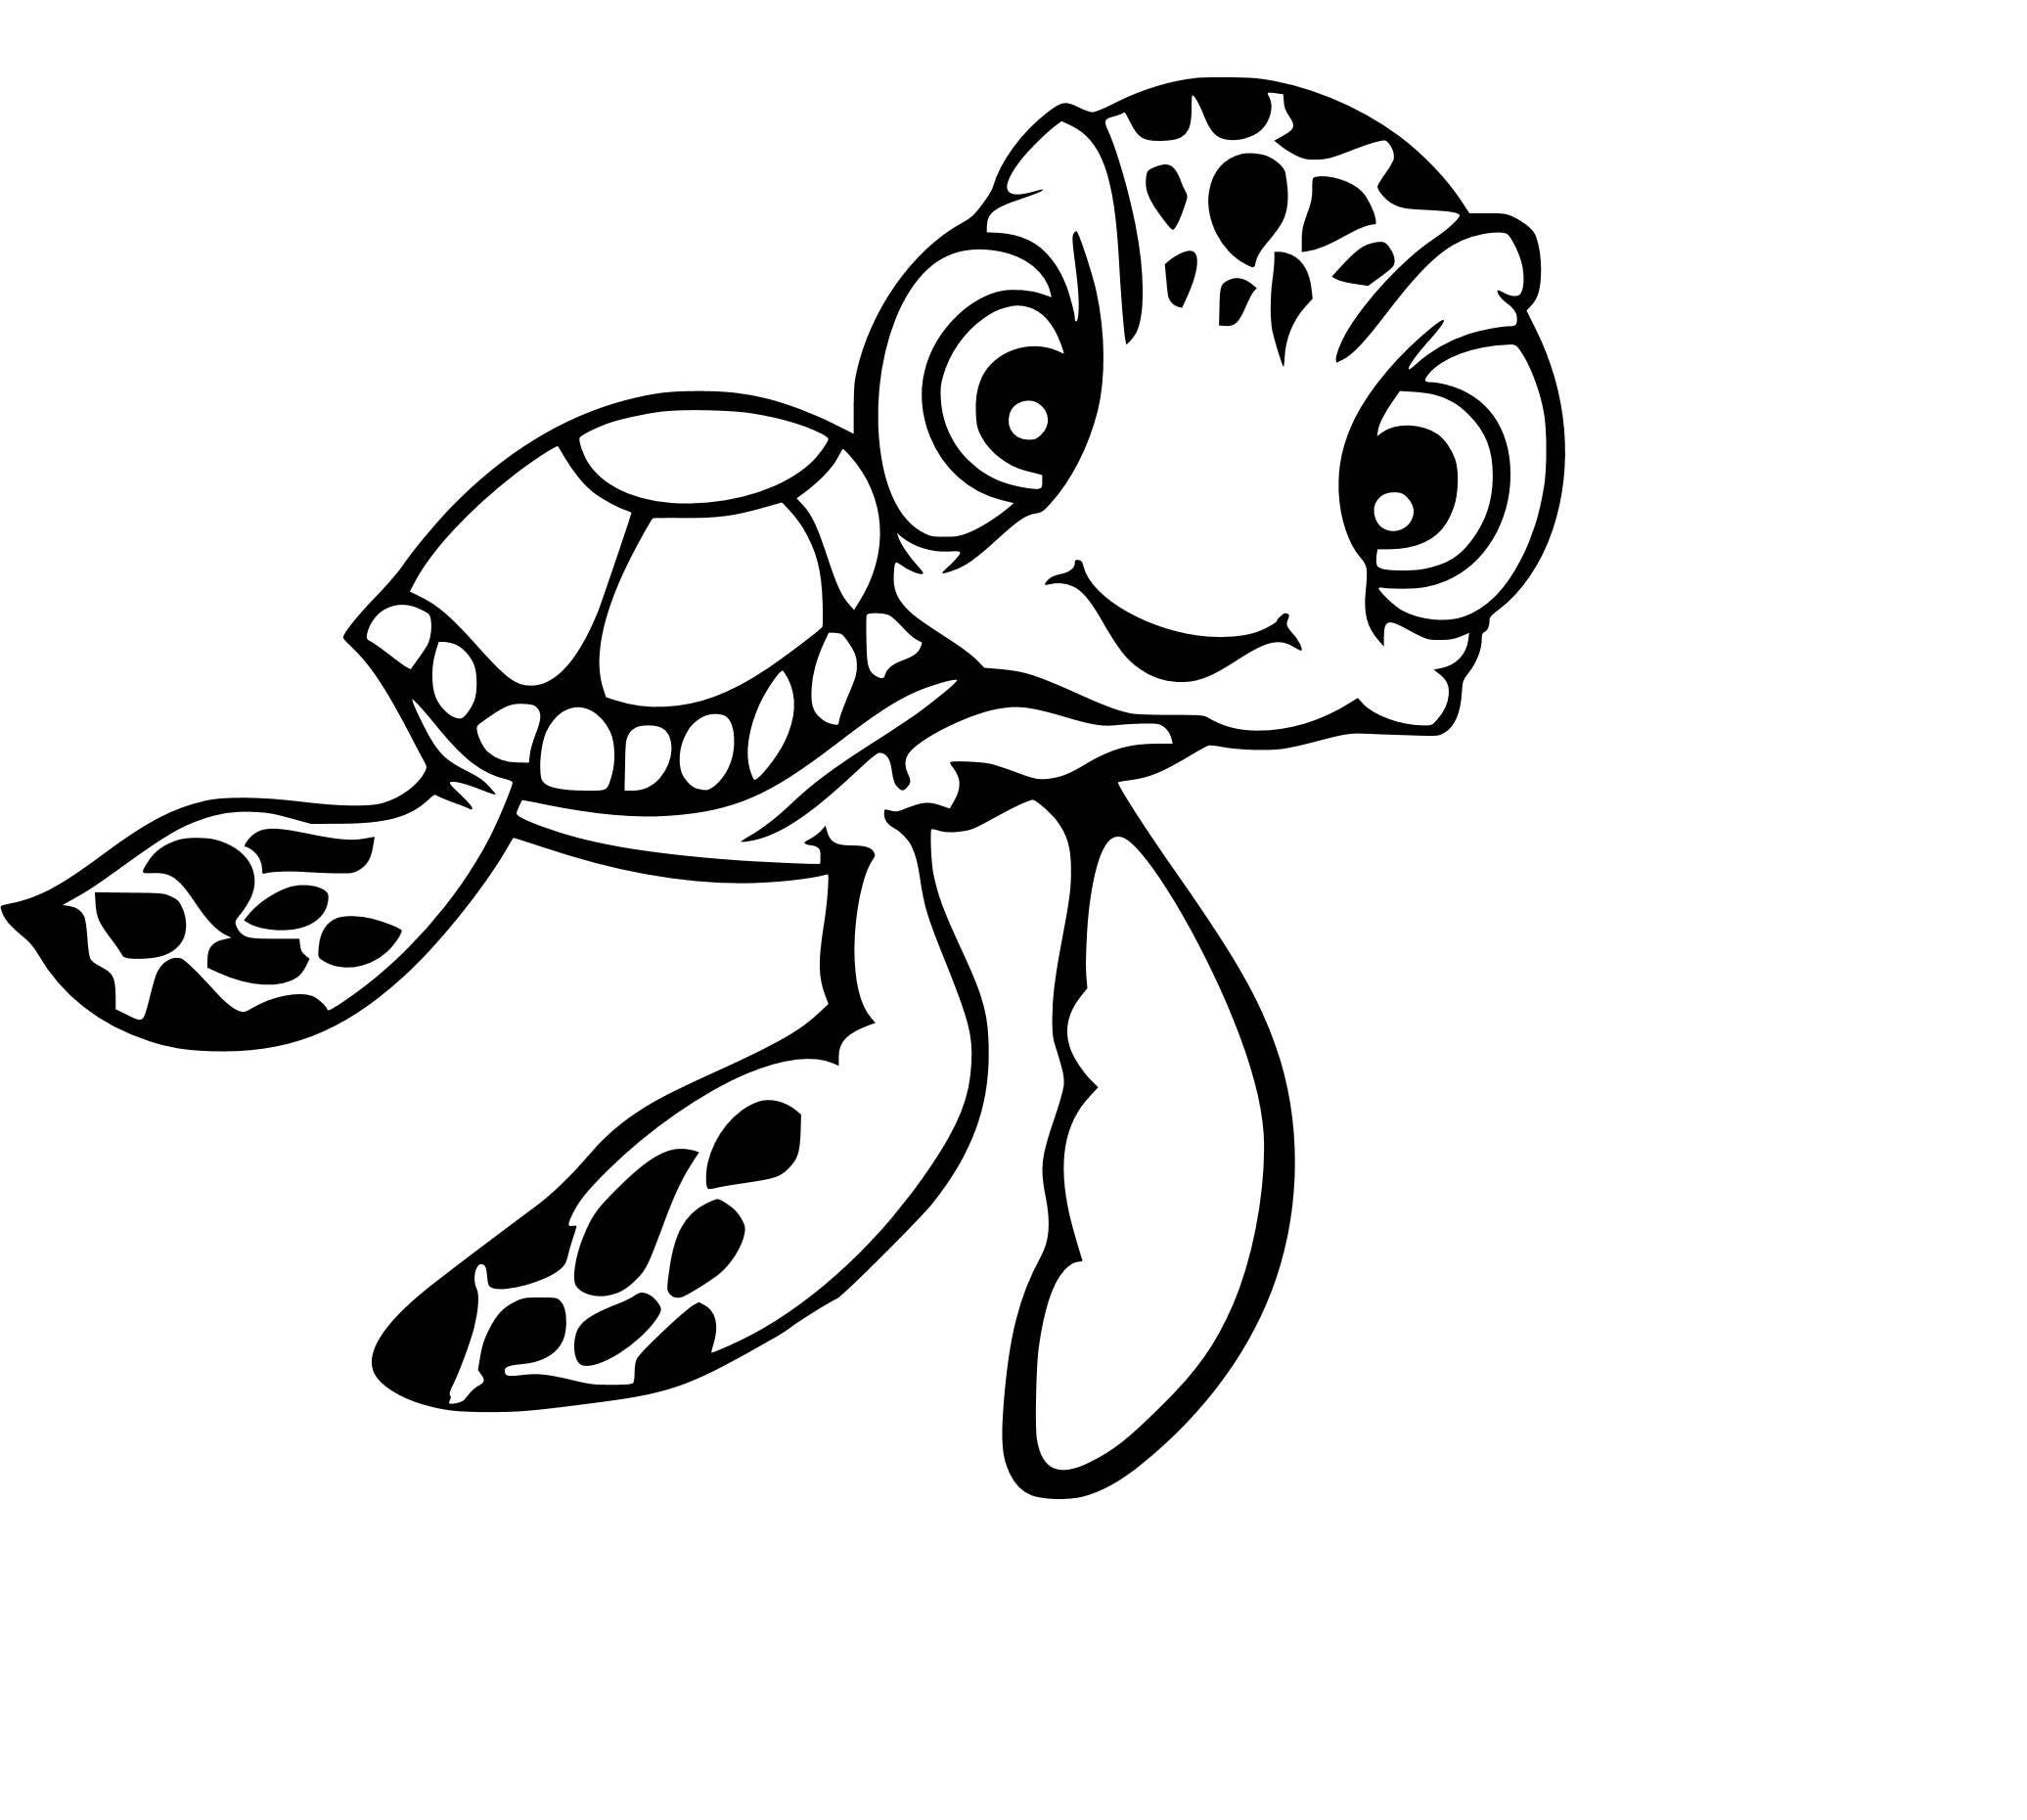 Squirt Turtle SVG cutting file | Etsy